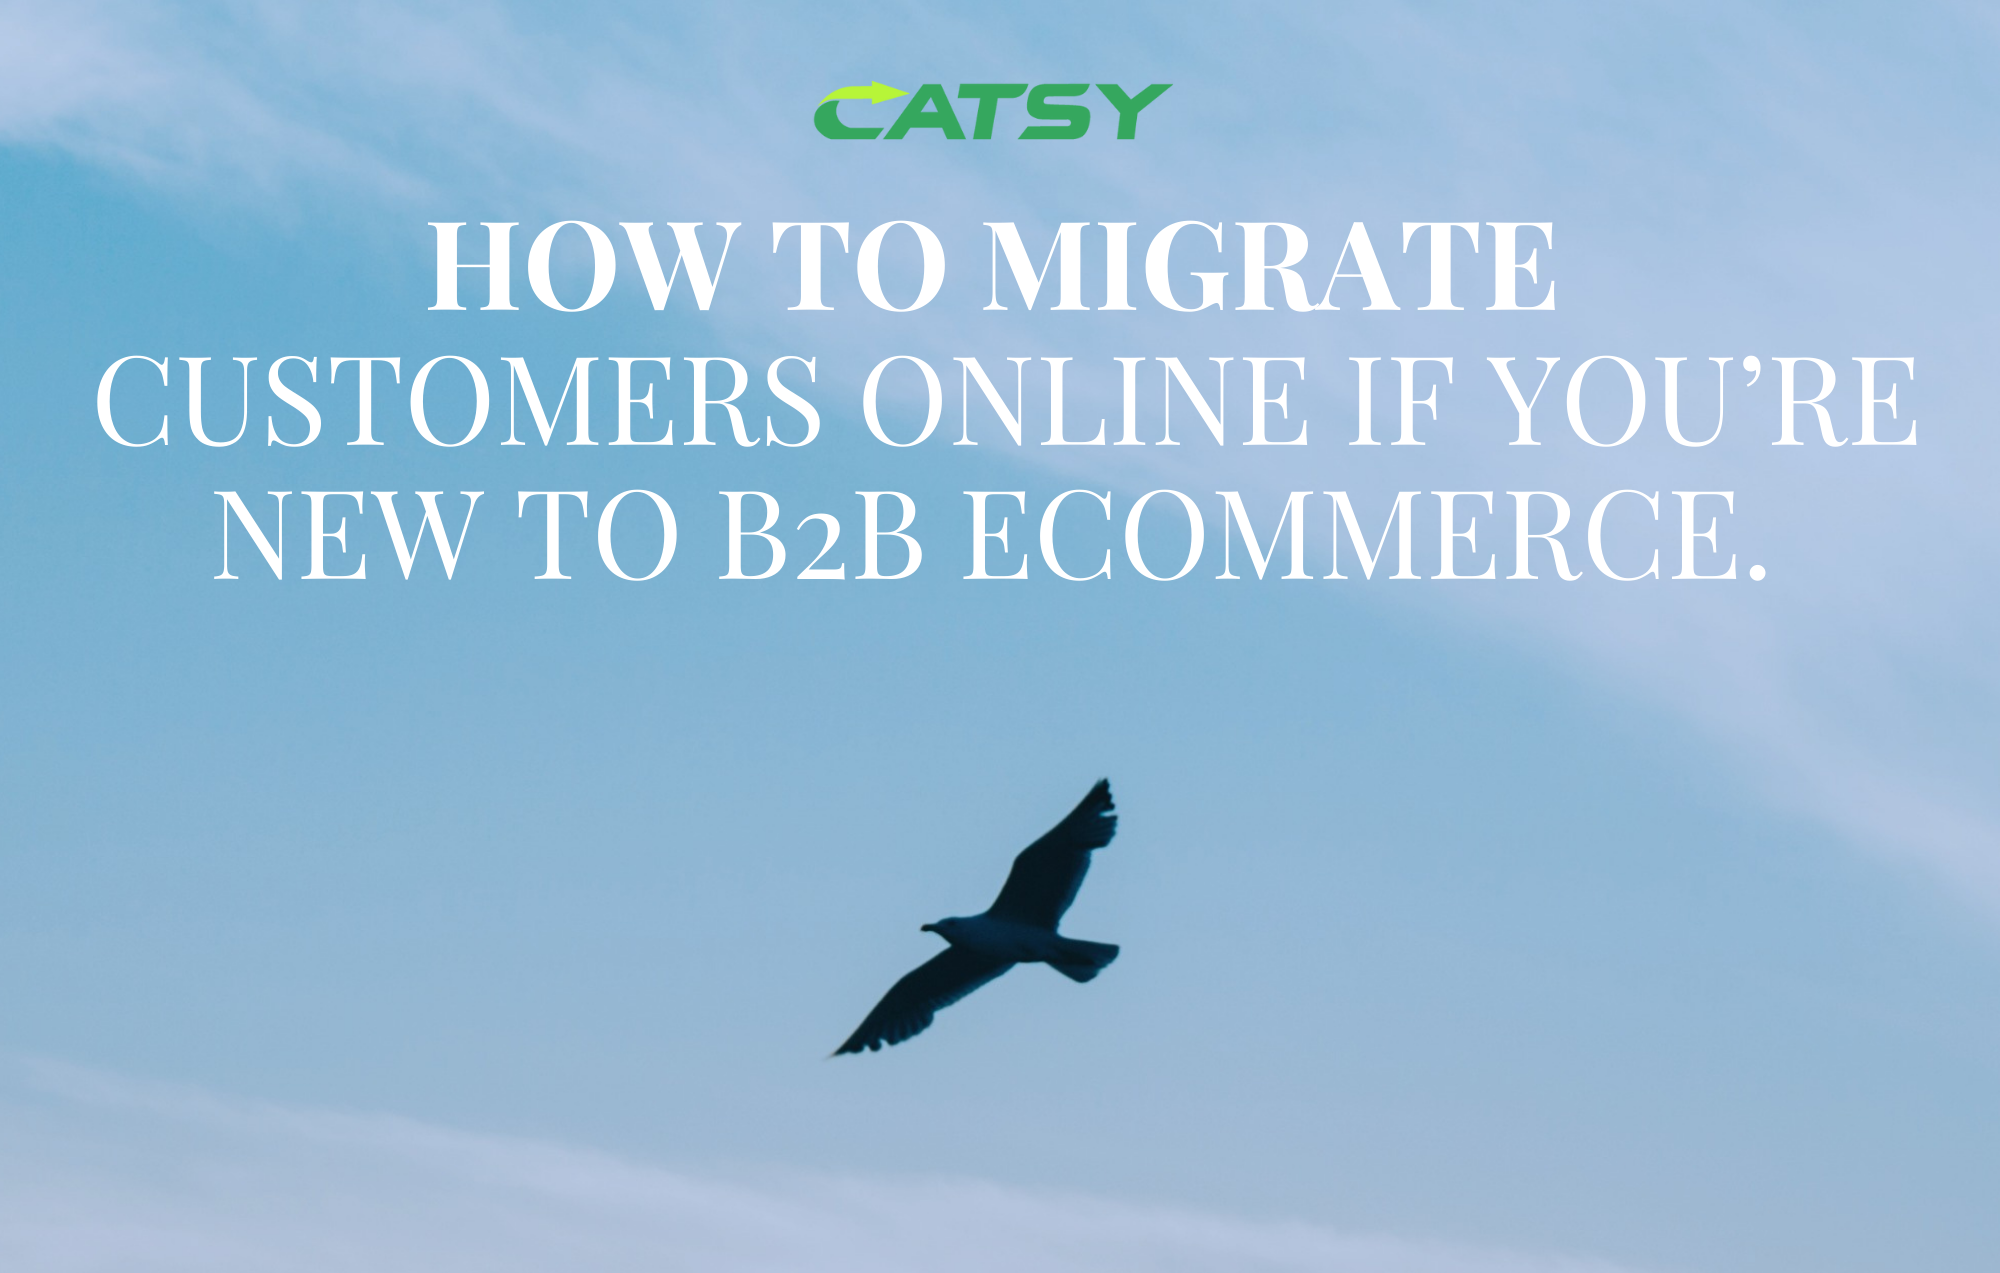 How to Migrate B2B Customers to Online Channels if You're New to the eCommerce space.